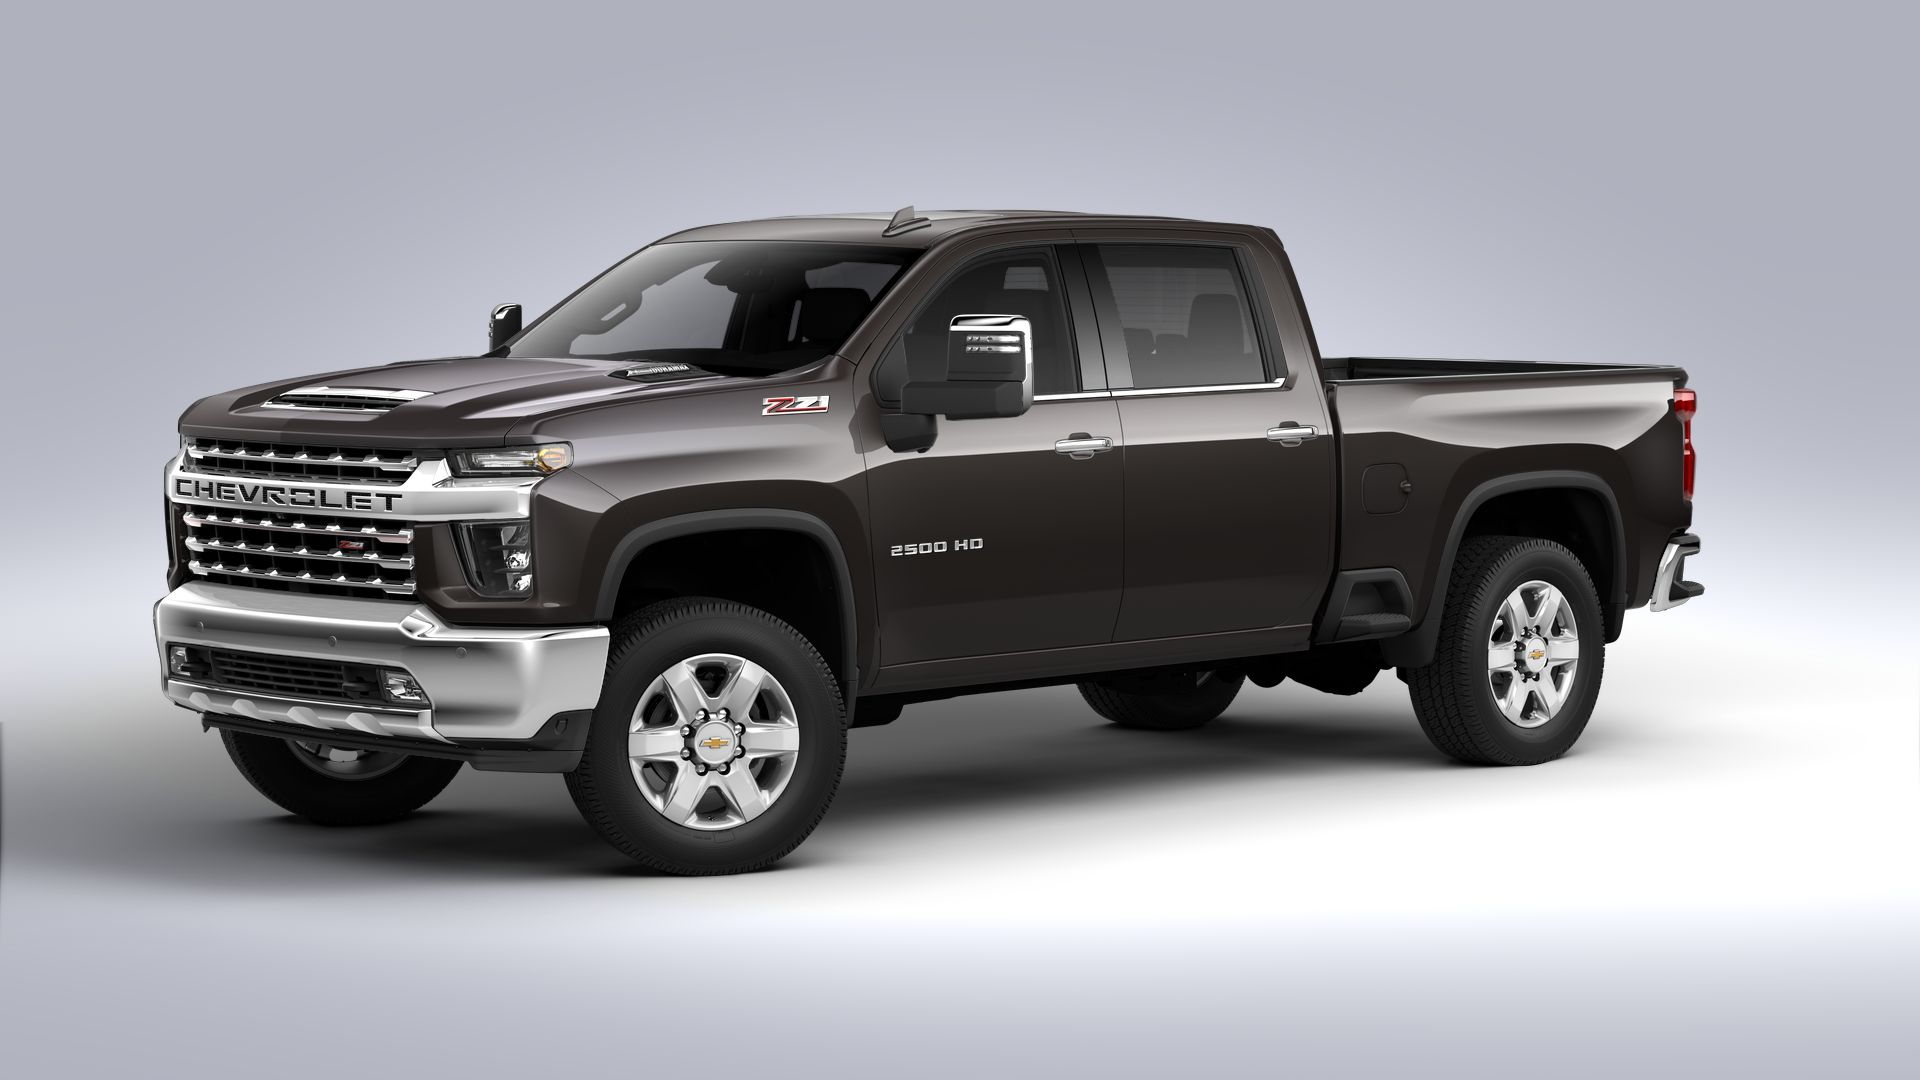 New 2021 Chevrolet Silverado 2500 HD LTZ FOUR WHEEL DRIVE Crew Cab